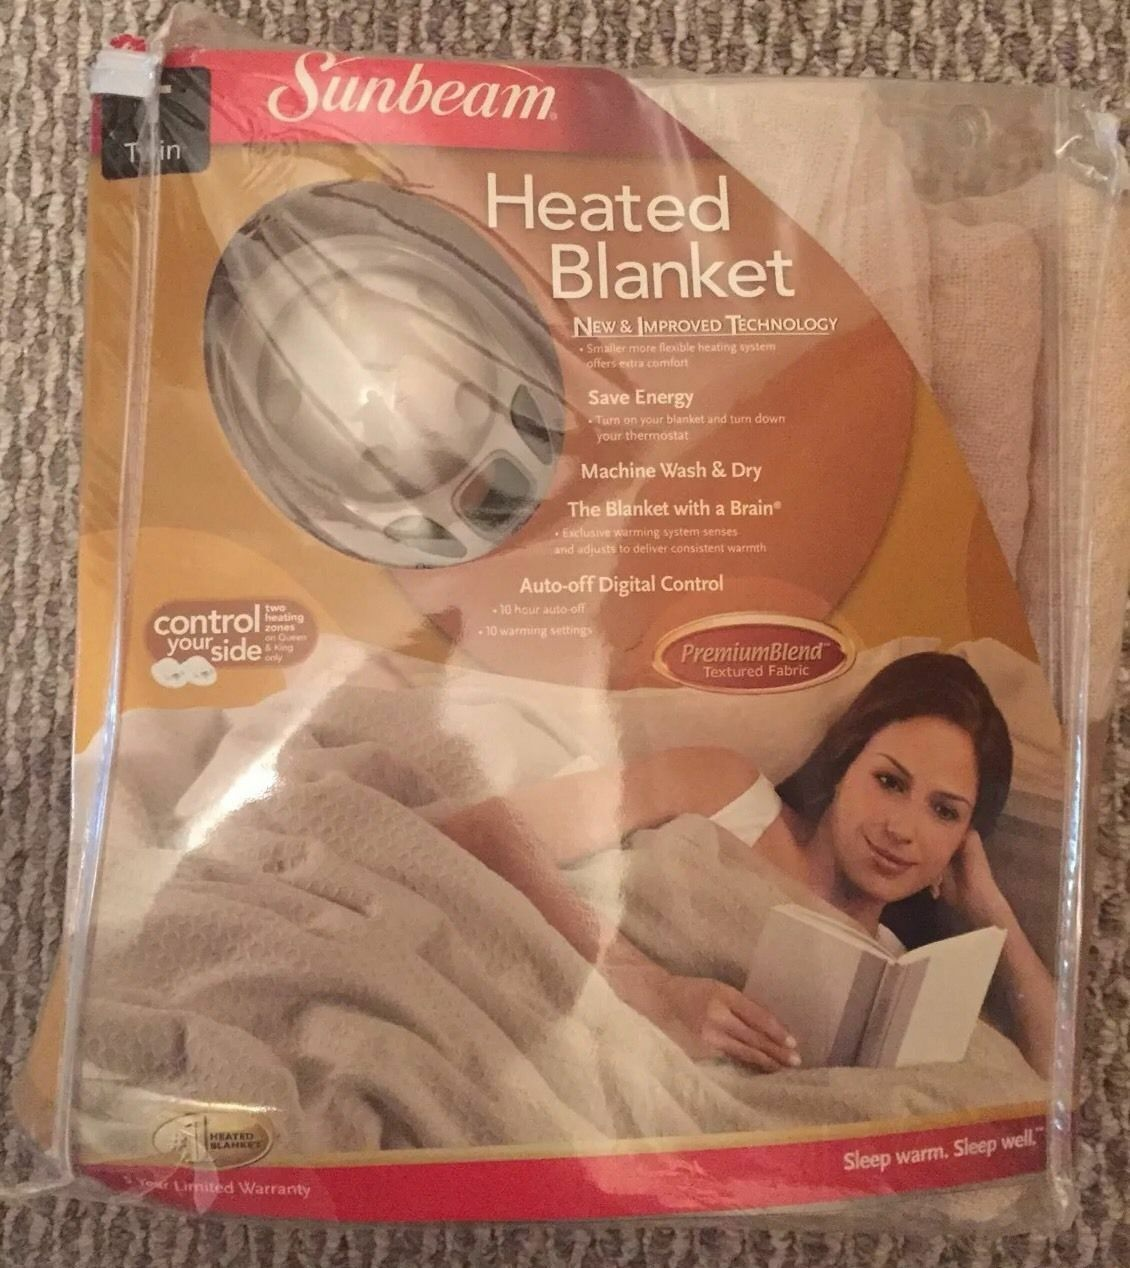 NEW Sunbeam Heated Blanked TWIN. Unopened Electric